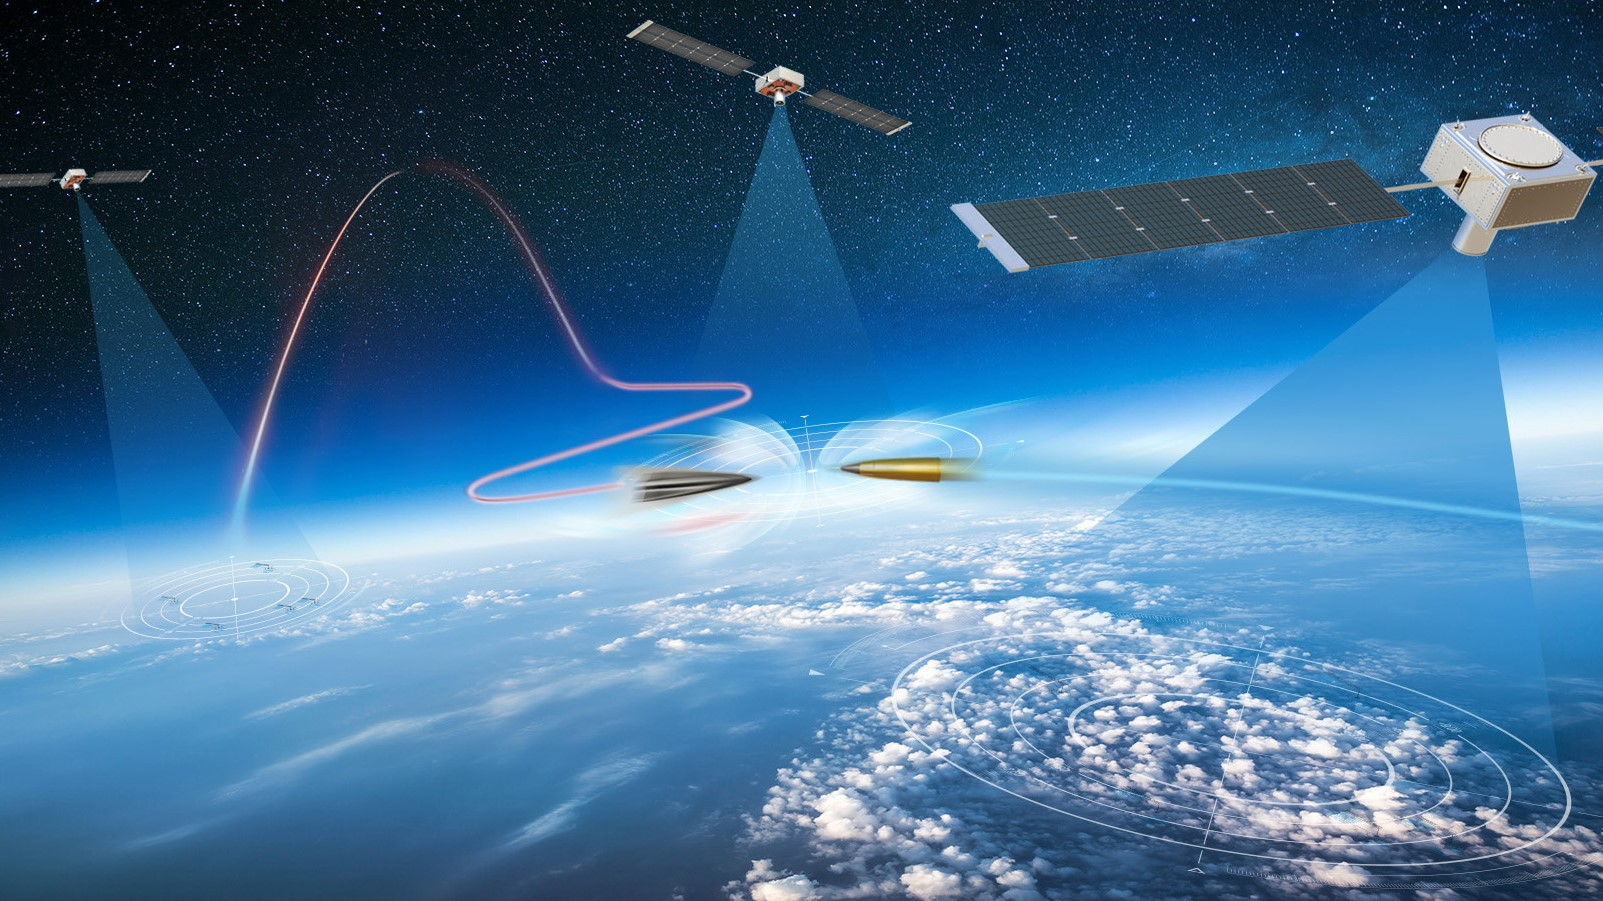 Congress wants the Missile Defense Agency to take primary responsibility for developing and deploying the Hypersonic and Ballistic Tracking Space Sensor. (Concept art from Northrop Grumman)